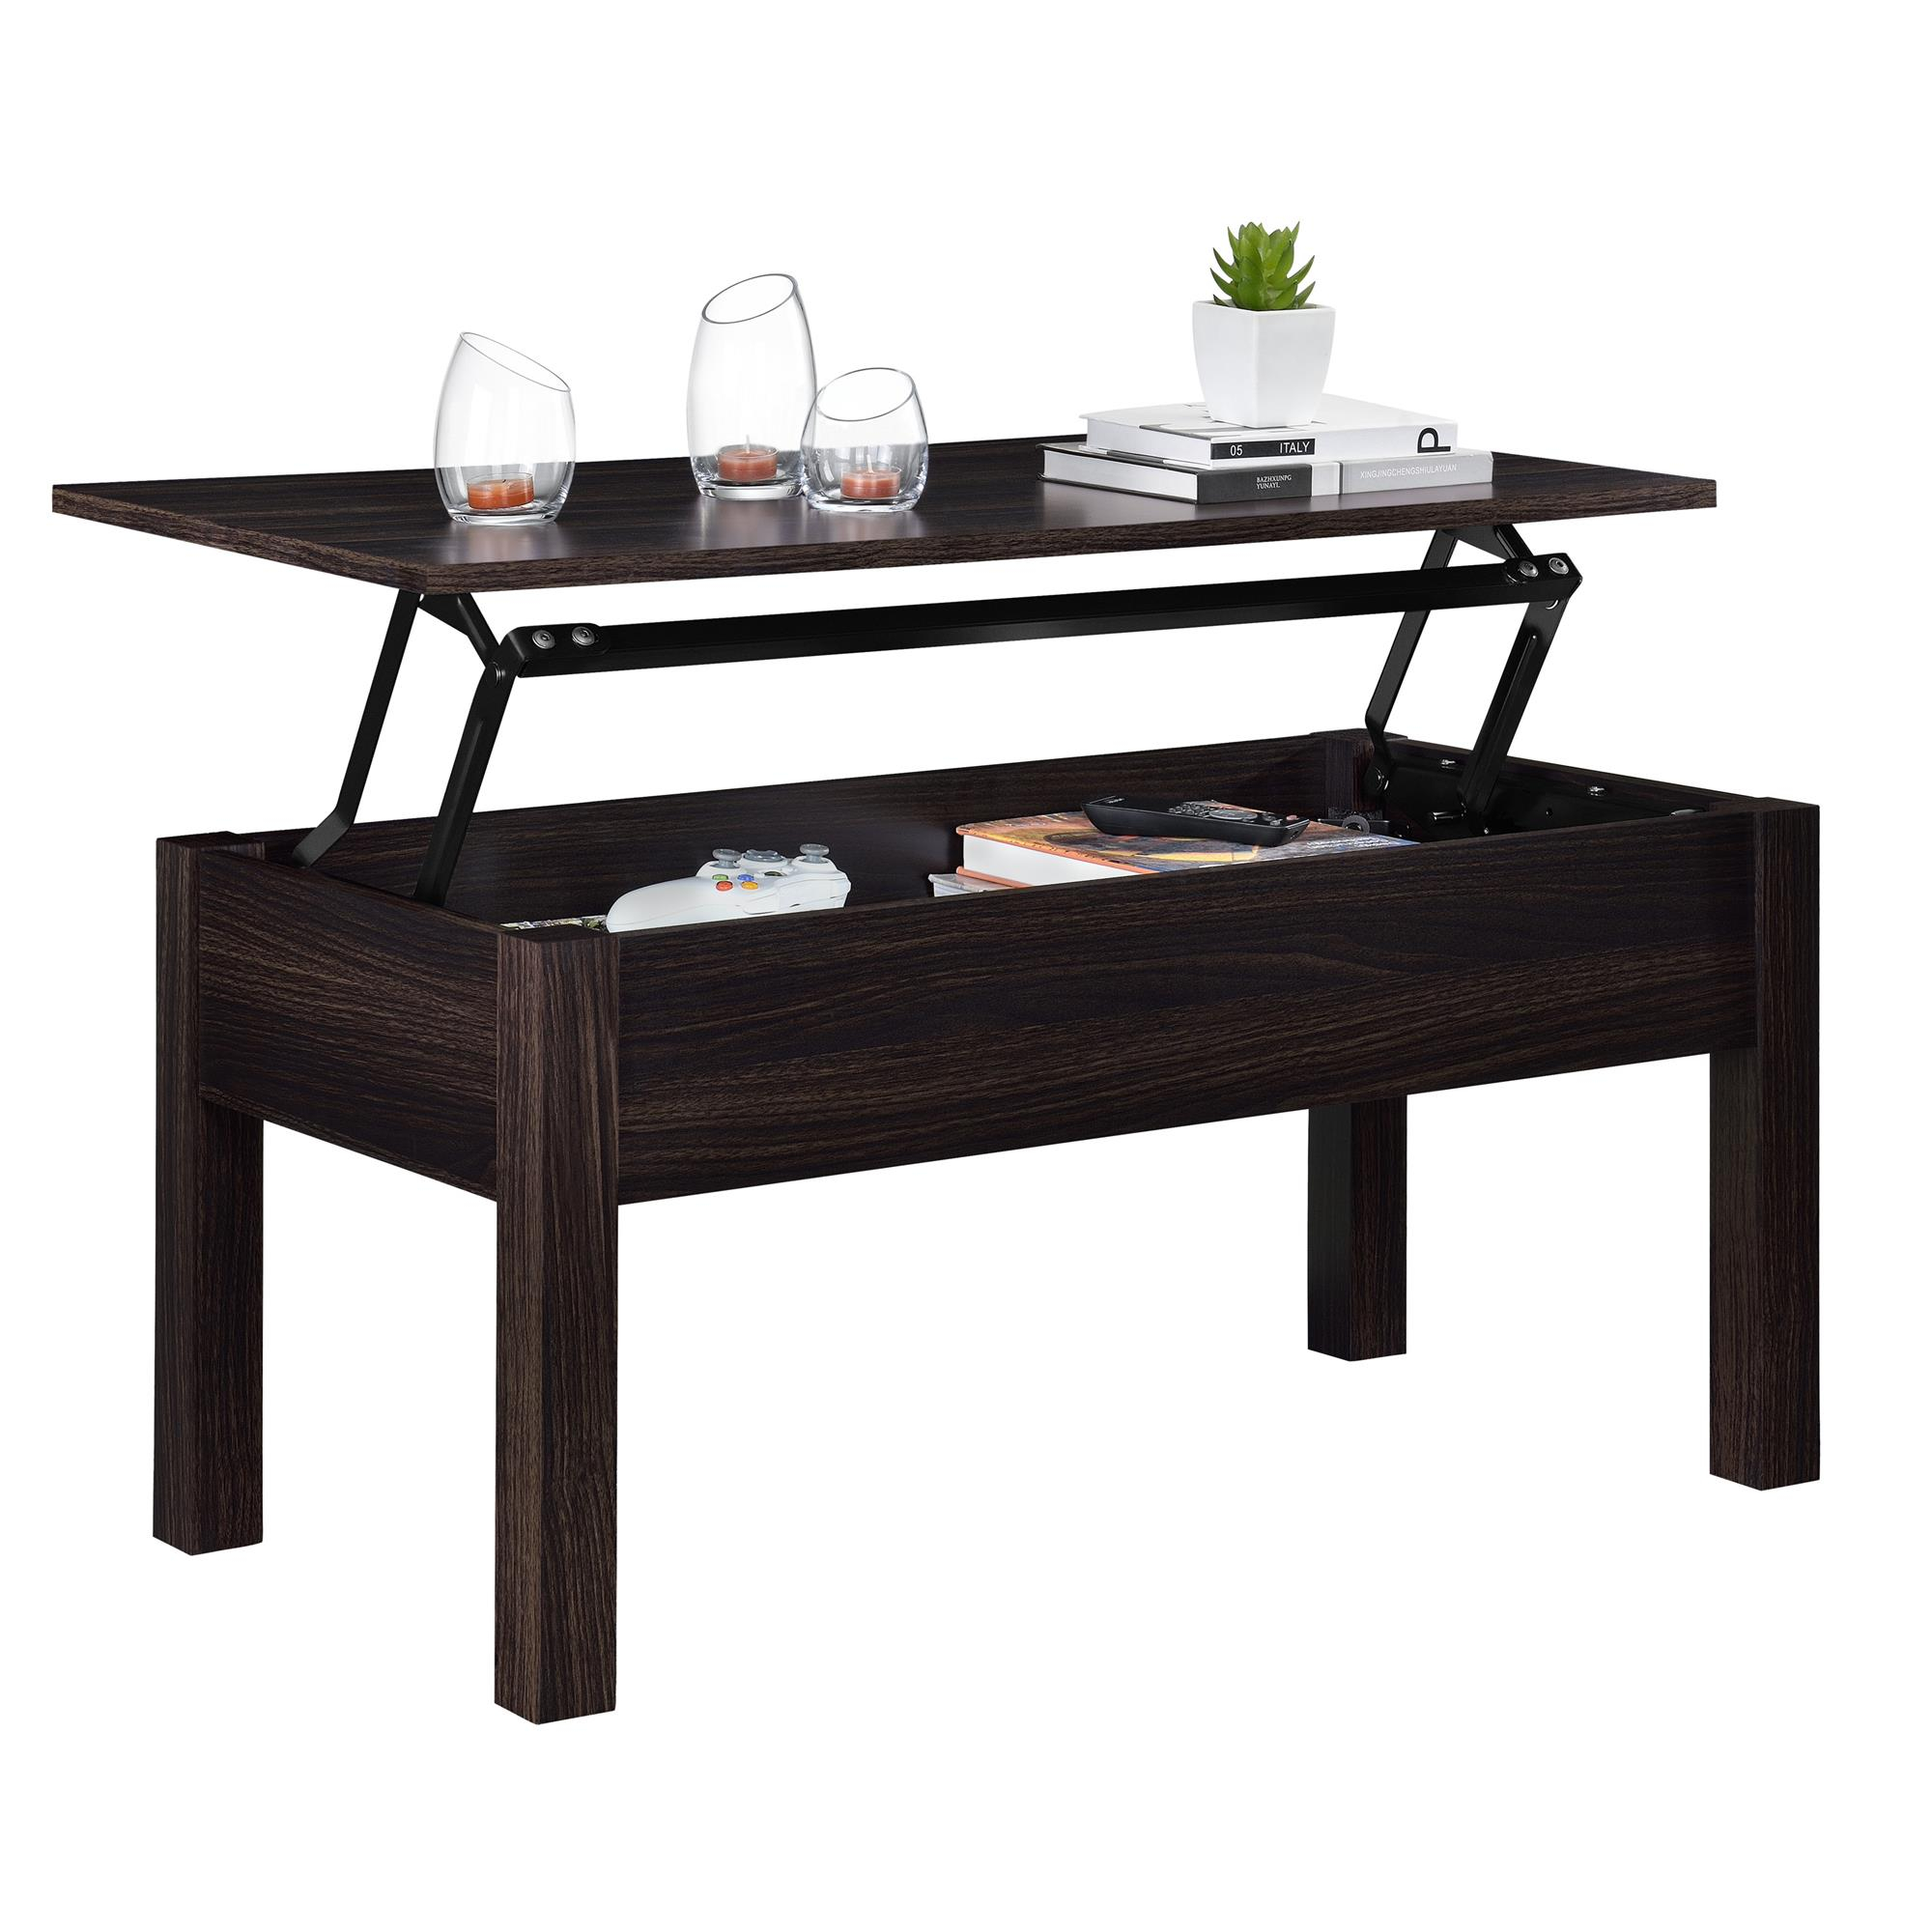 9 Mainstays Lift top Coffee Table Gallery